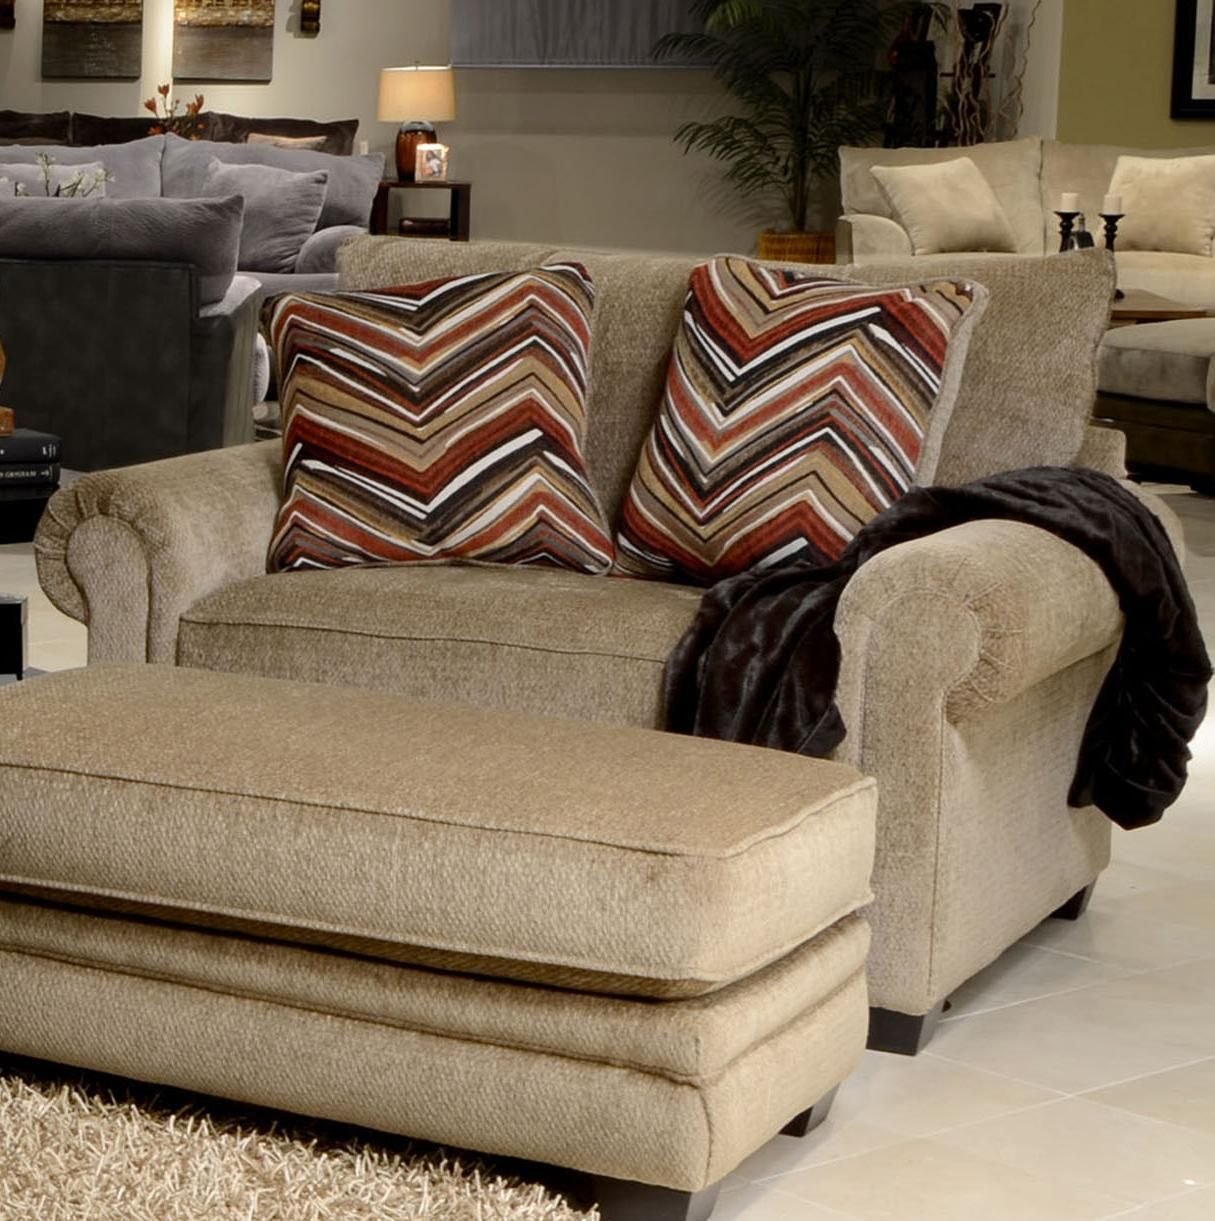 Delicieux Anniston Oversized Rolled Arm Chair By Jackson Furniture At Great American  Home Store